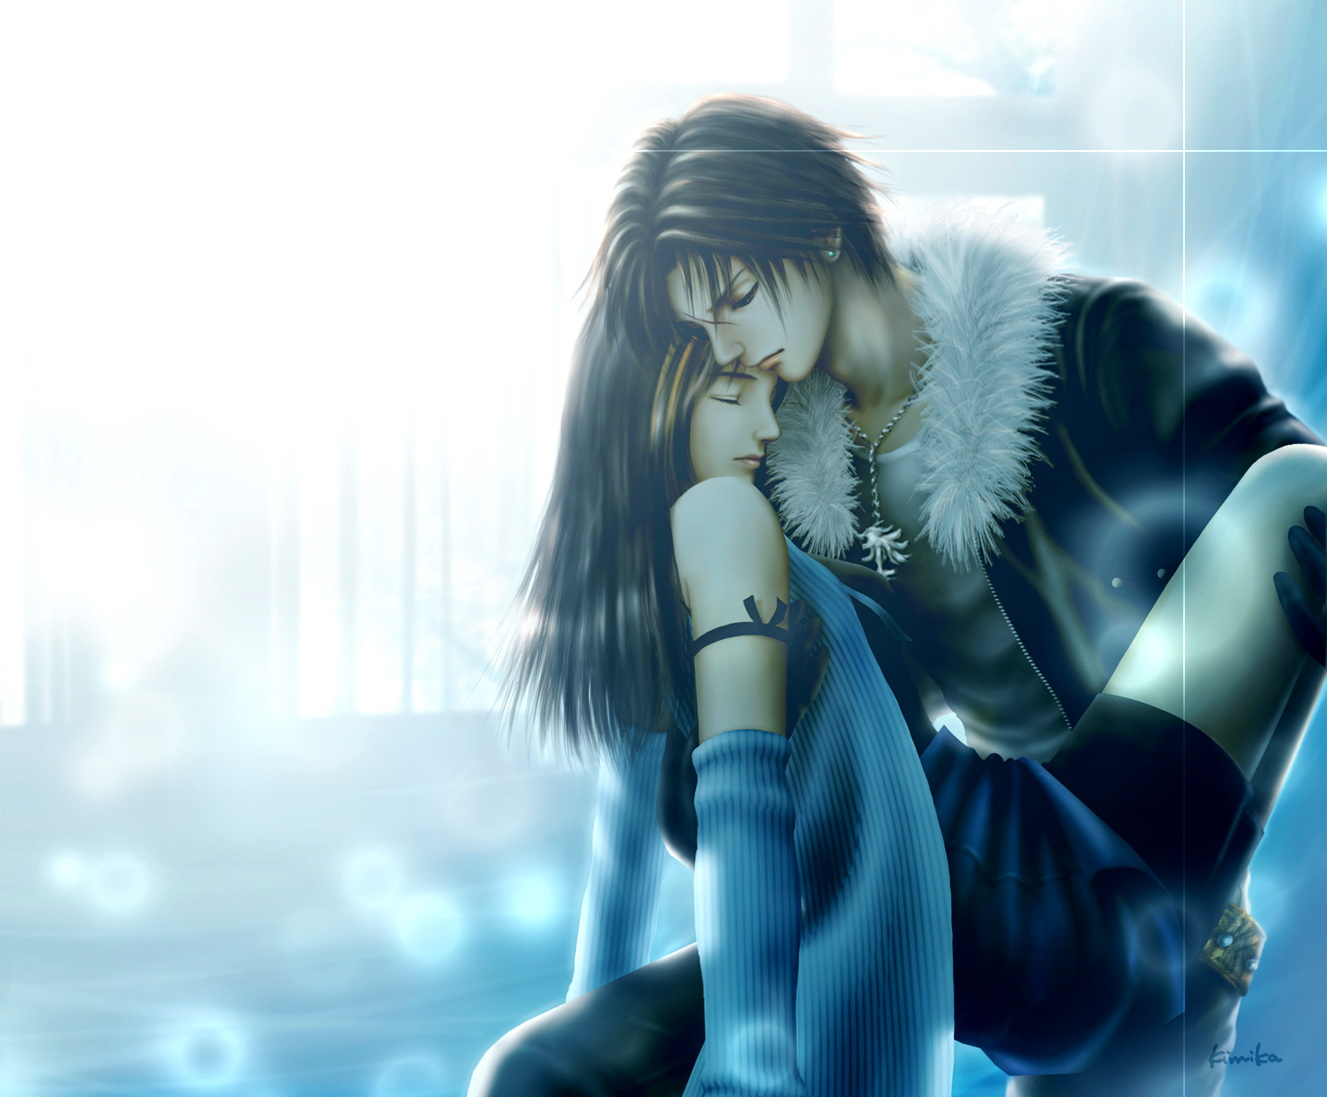 rinoa and squall relationship tips